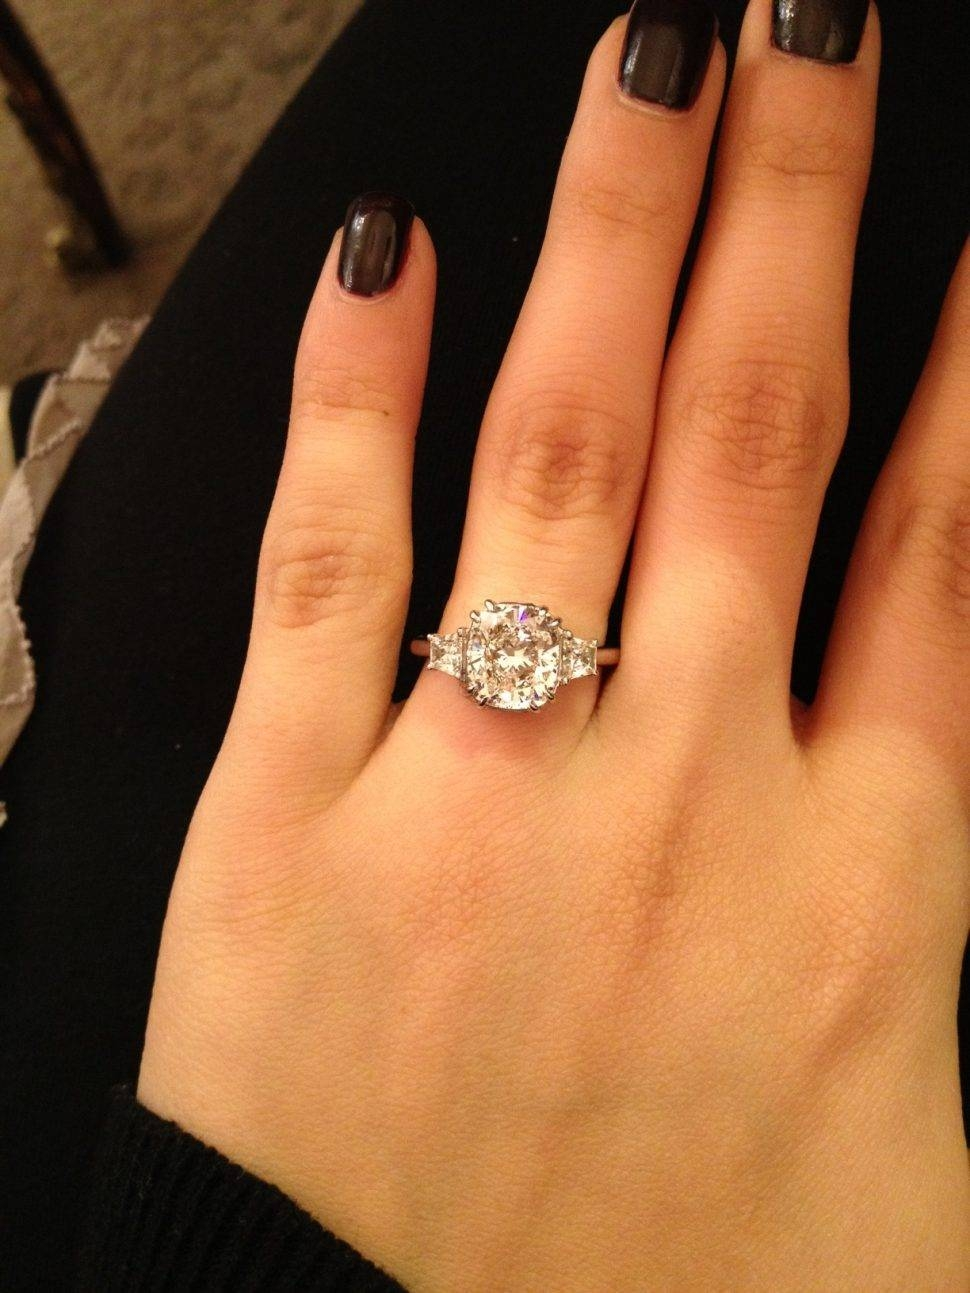 Engagement Rings : Uncommon Halo Engagement Rings Images Regarding Engagement Rings Under (View 2 of 15)